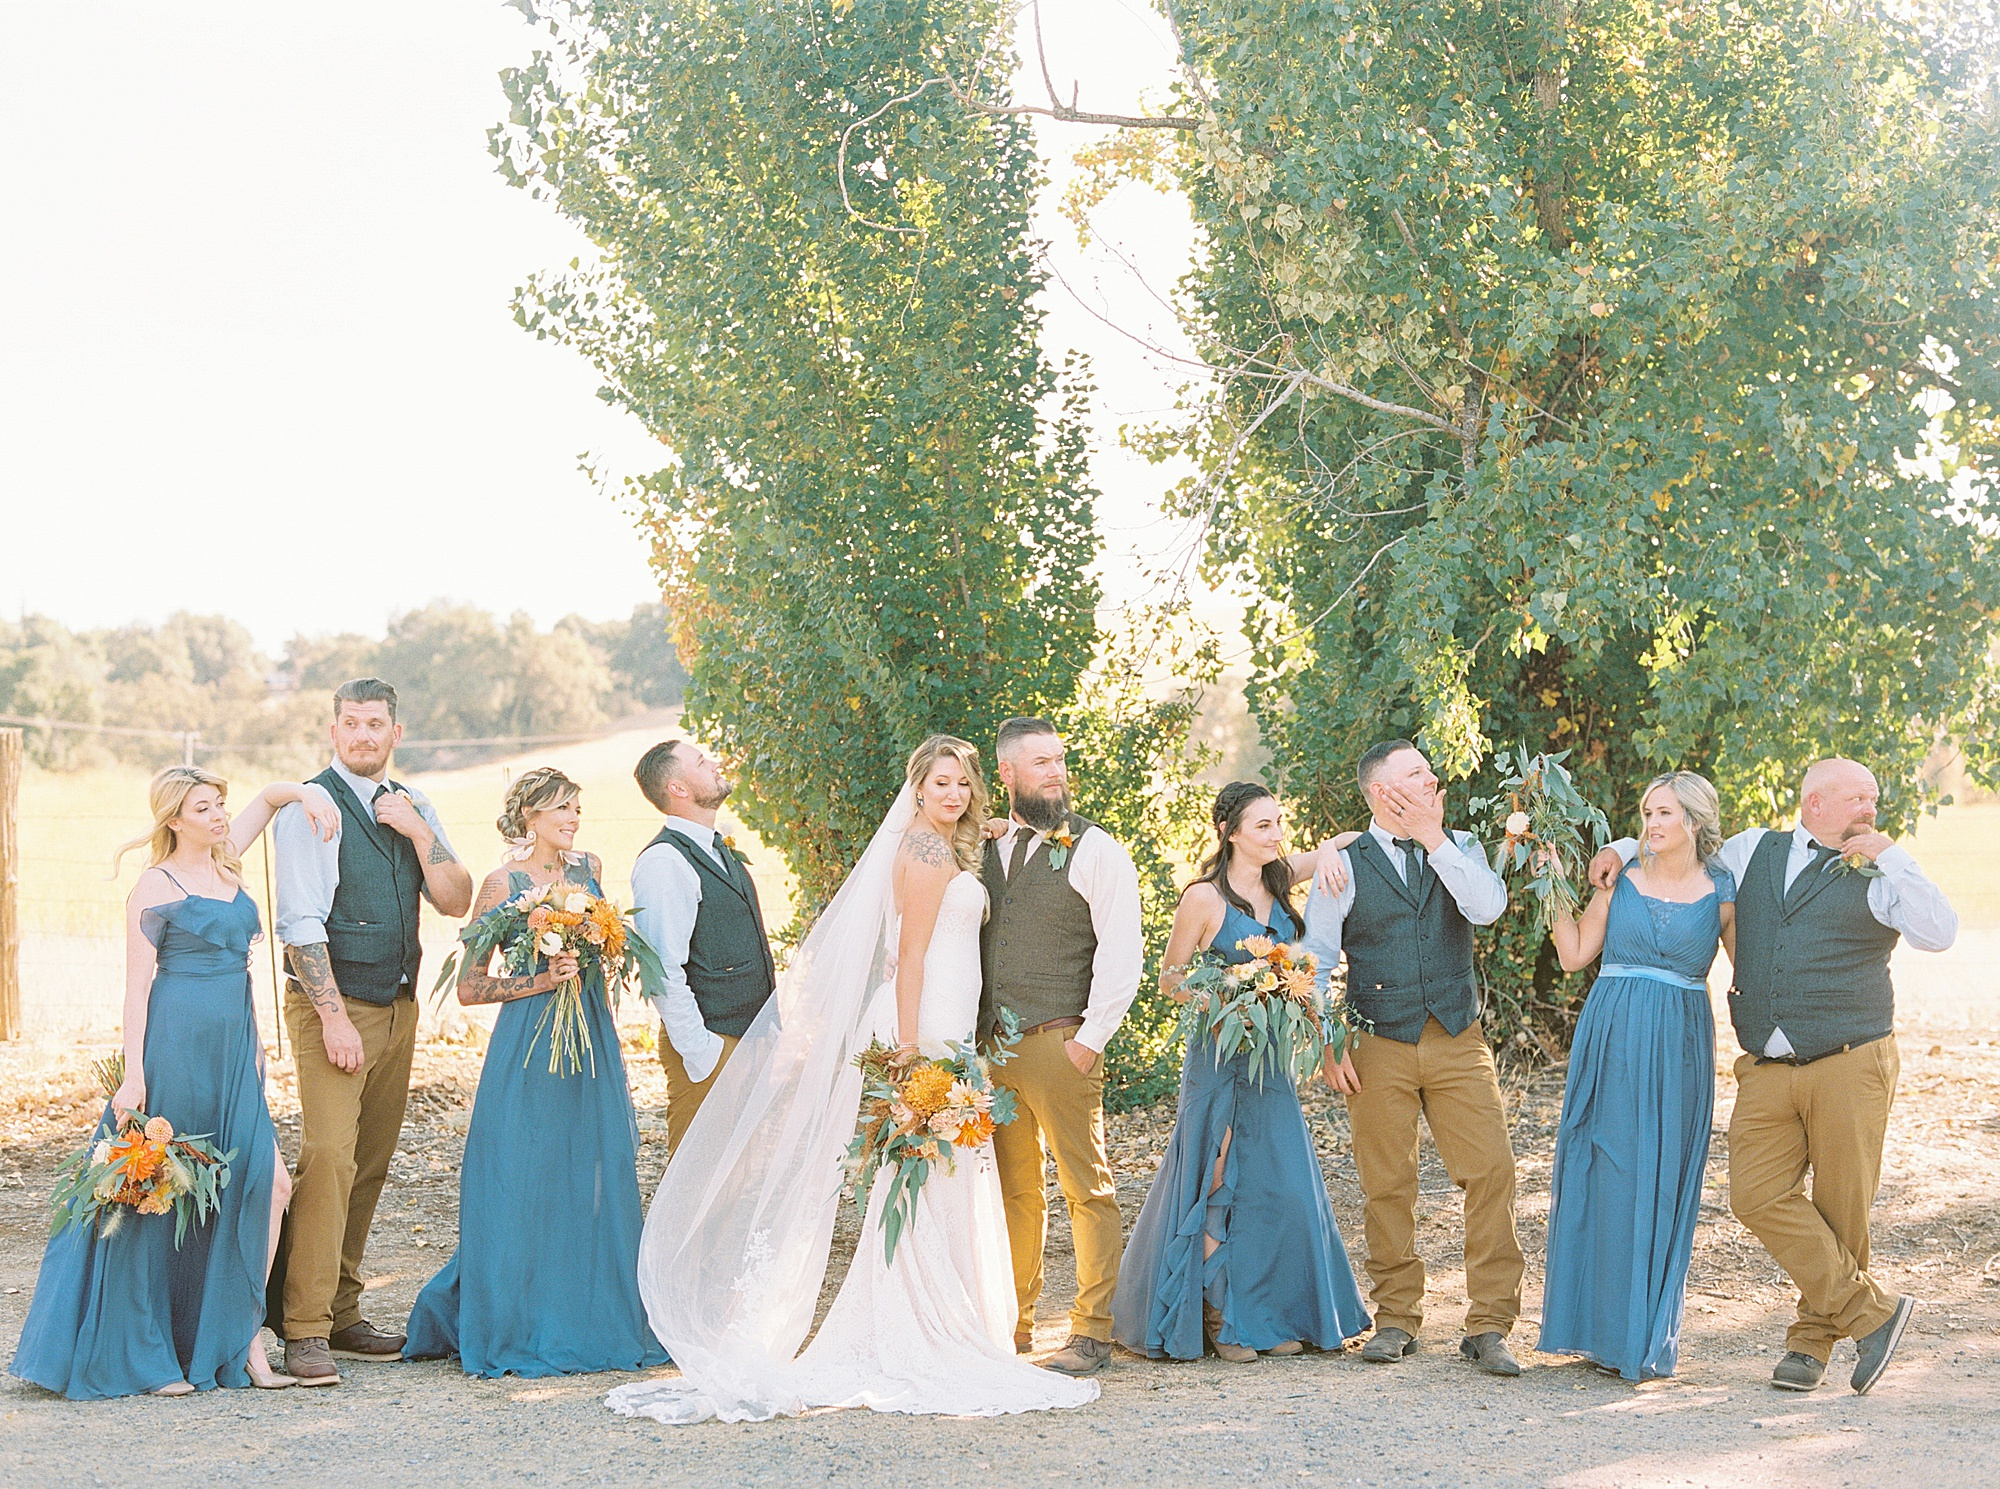 Sonora Wedding Photographer - Tiffany and Jesse - Ashley Baumgartner - Private Estate Summer Wedding_0096.jpg